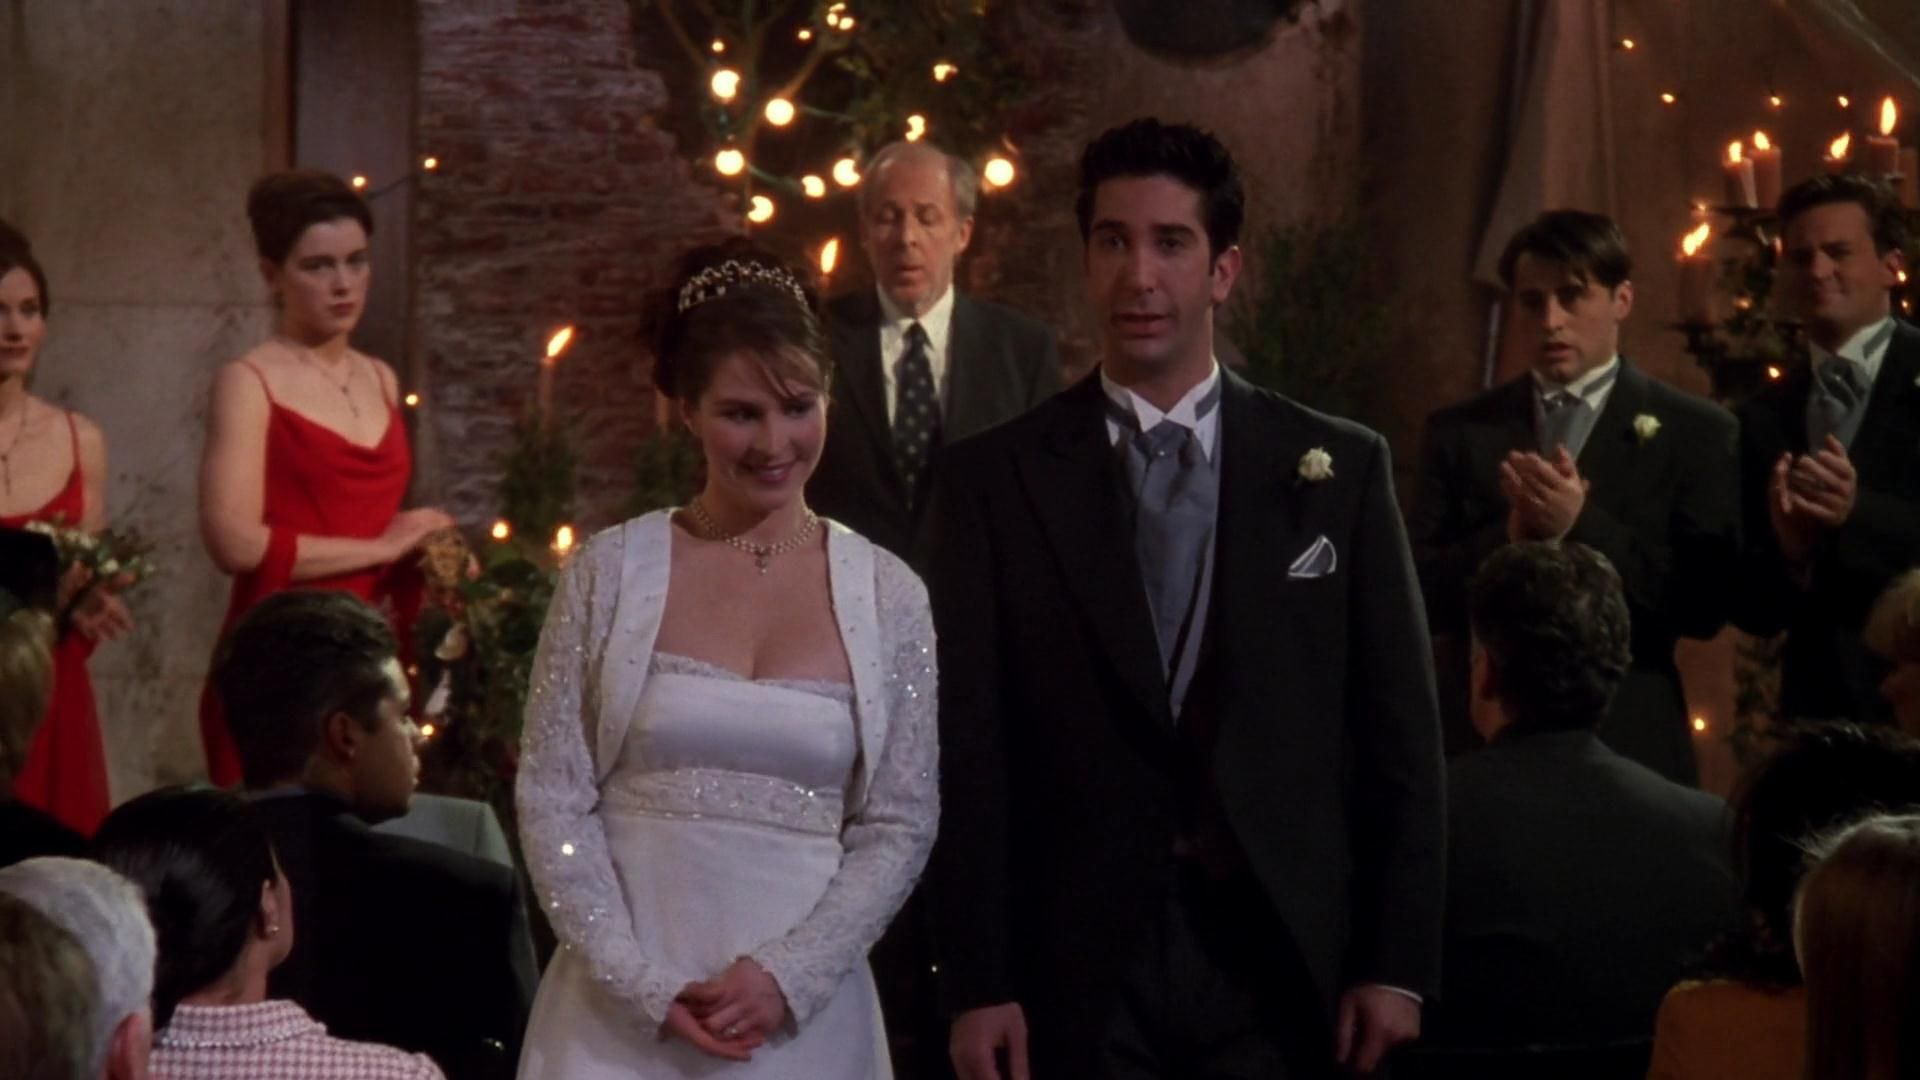 Where did the whole wedding took place? 3